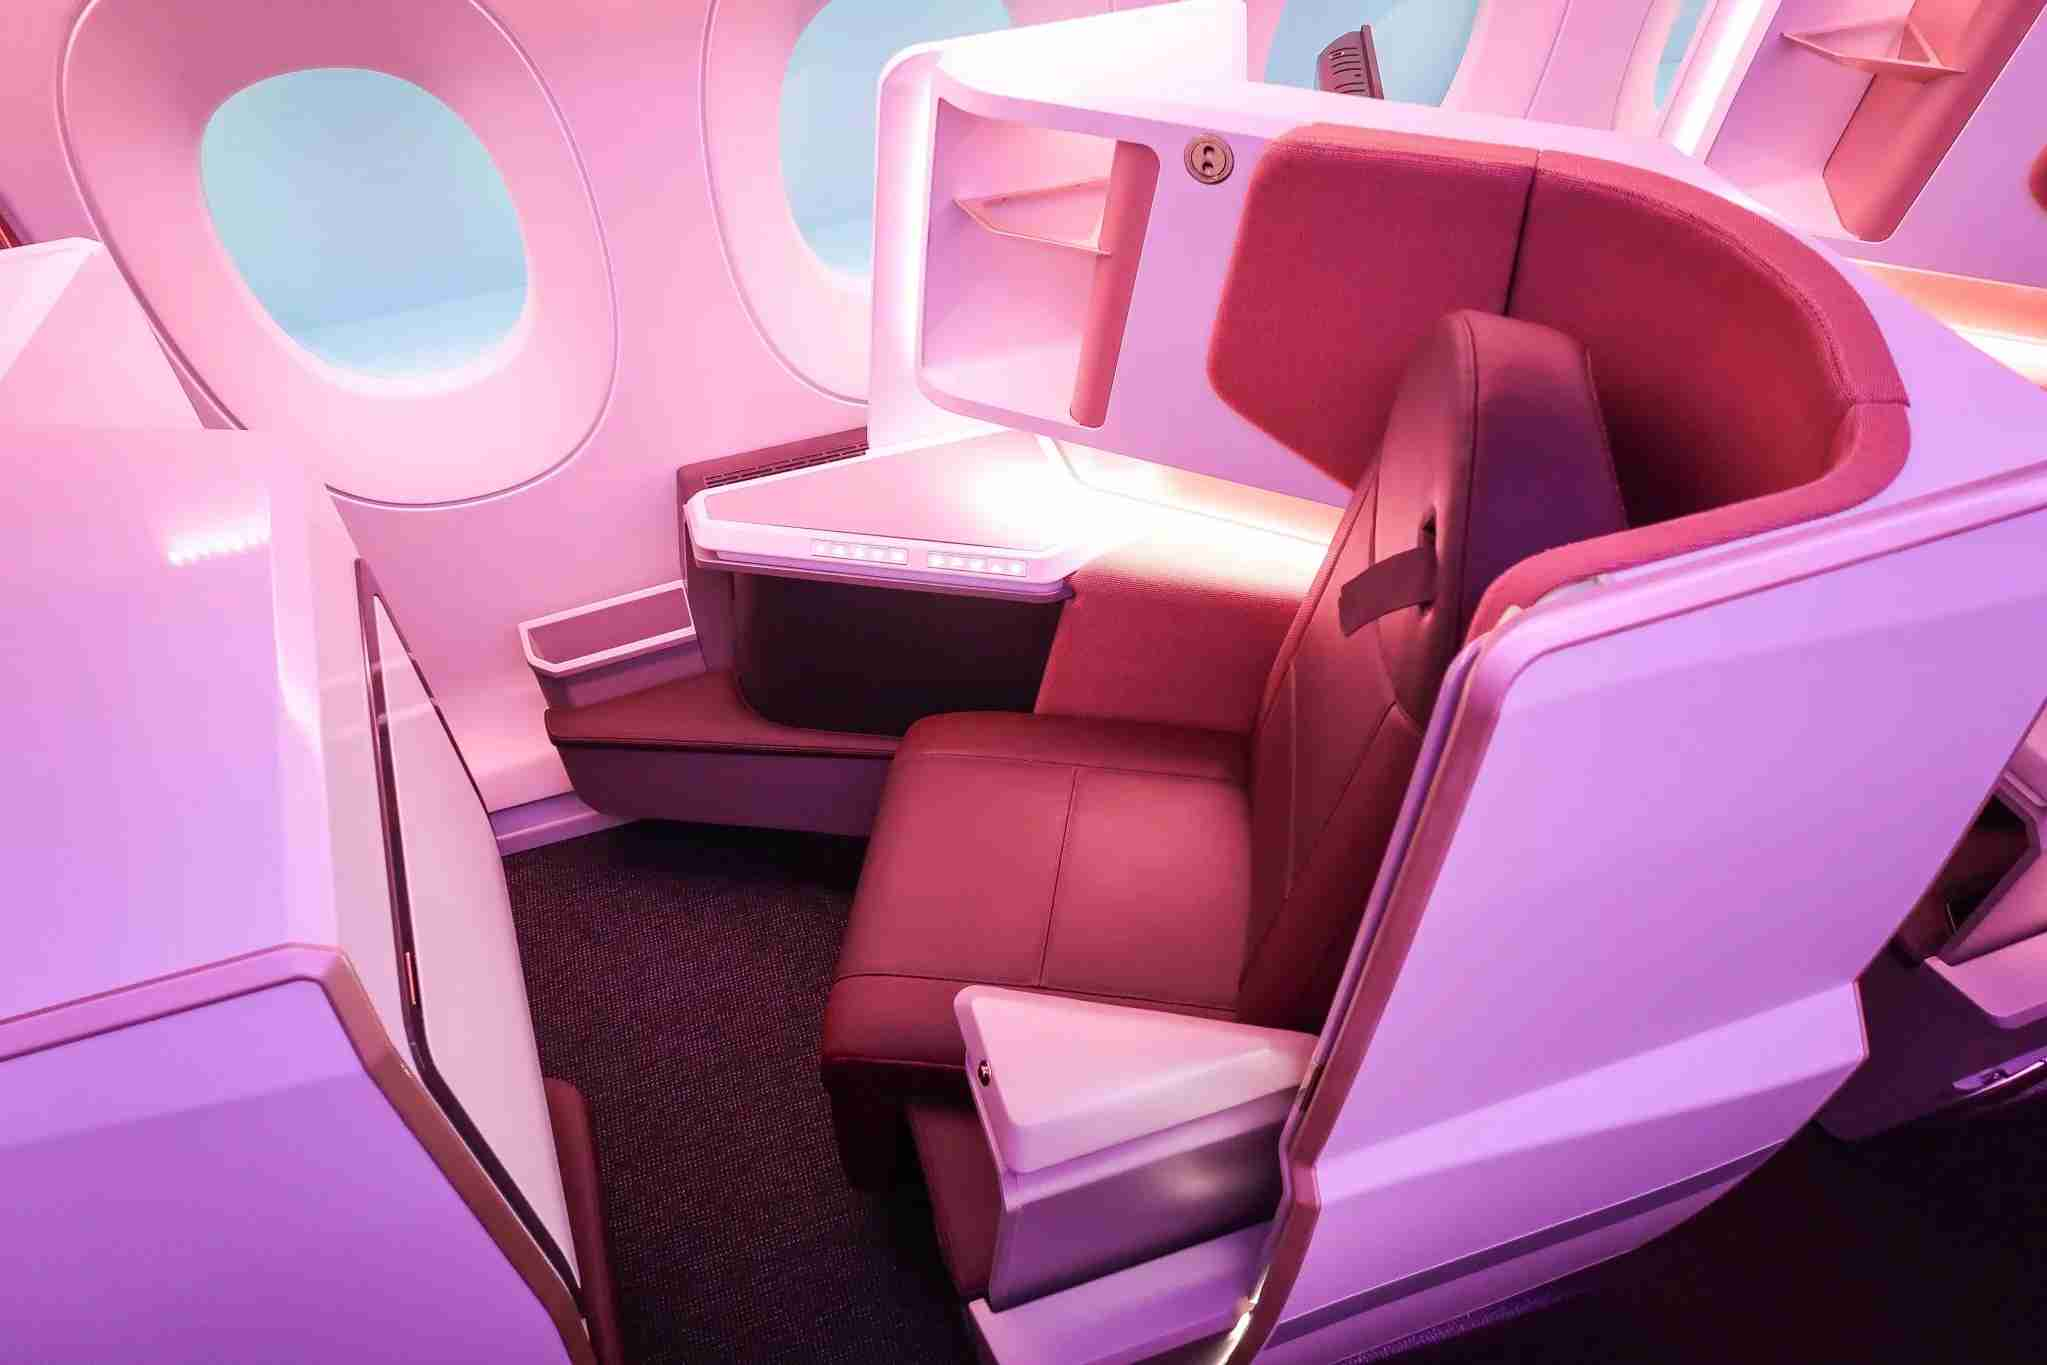 Virgin Atlantic new Upper Class Suite as featured on the Airbus A350-1000 (Image by Nicky Kelvin / The Points Guy)